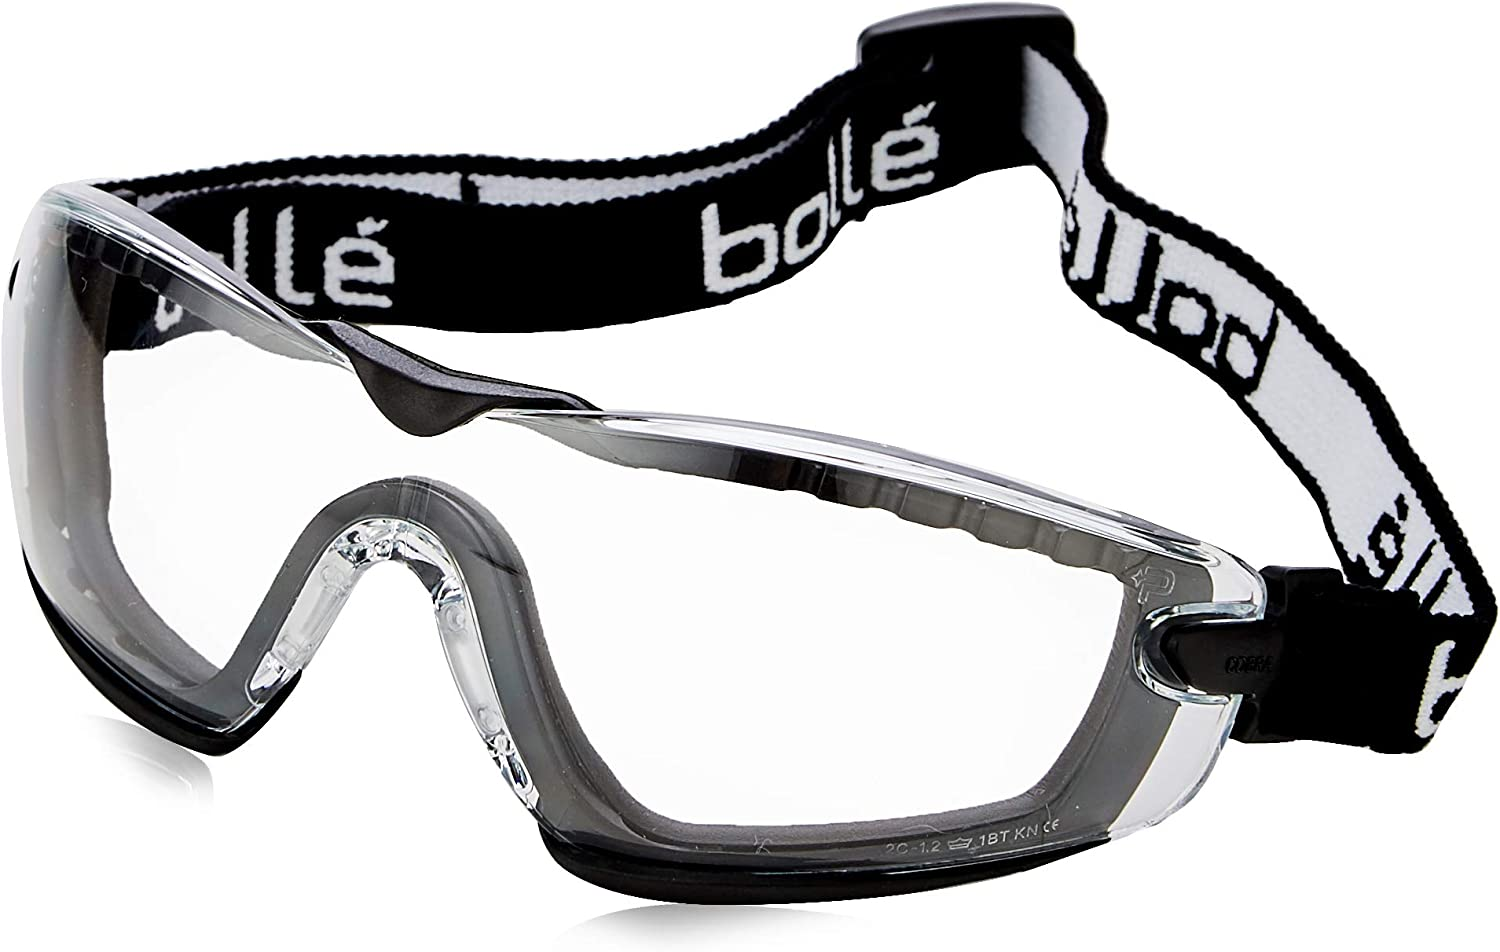 Boll – Cobra Foam – Safety Glasses Goggles With Clear Lens And Foam Surround